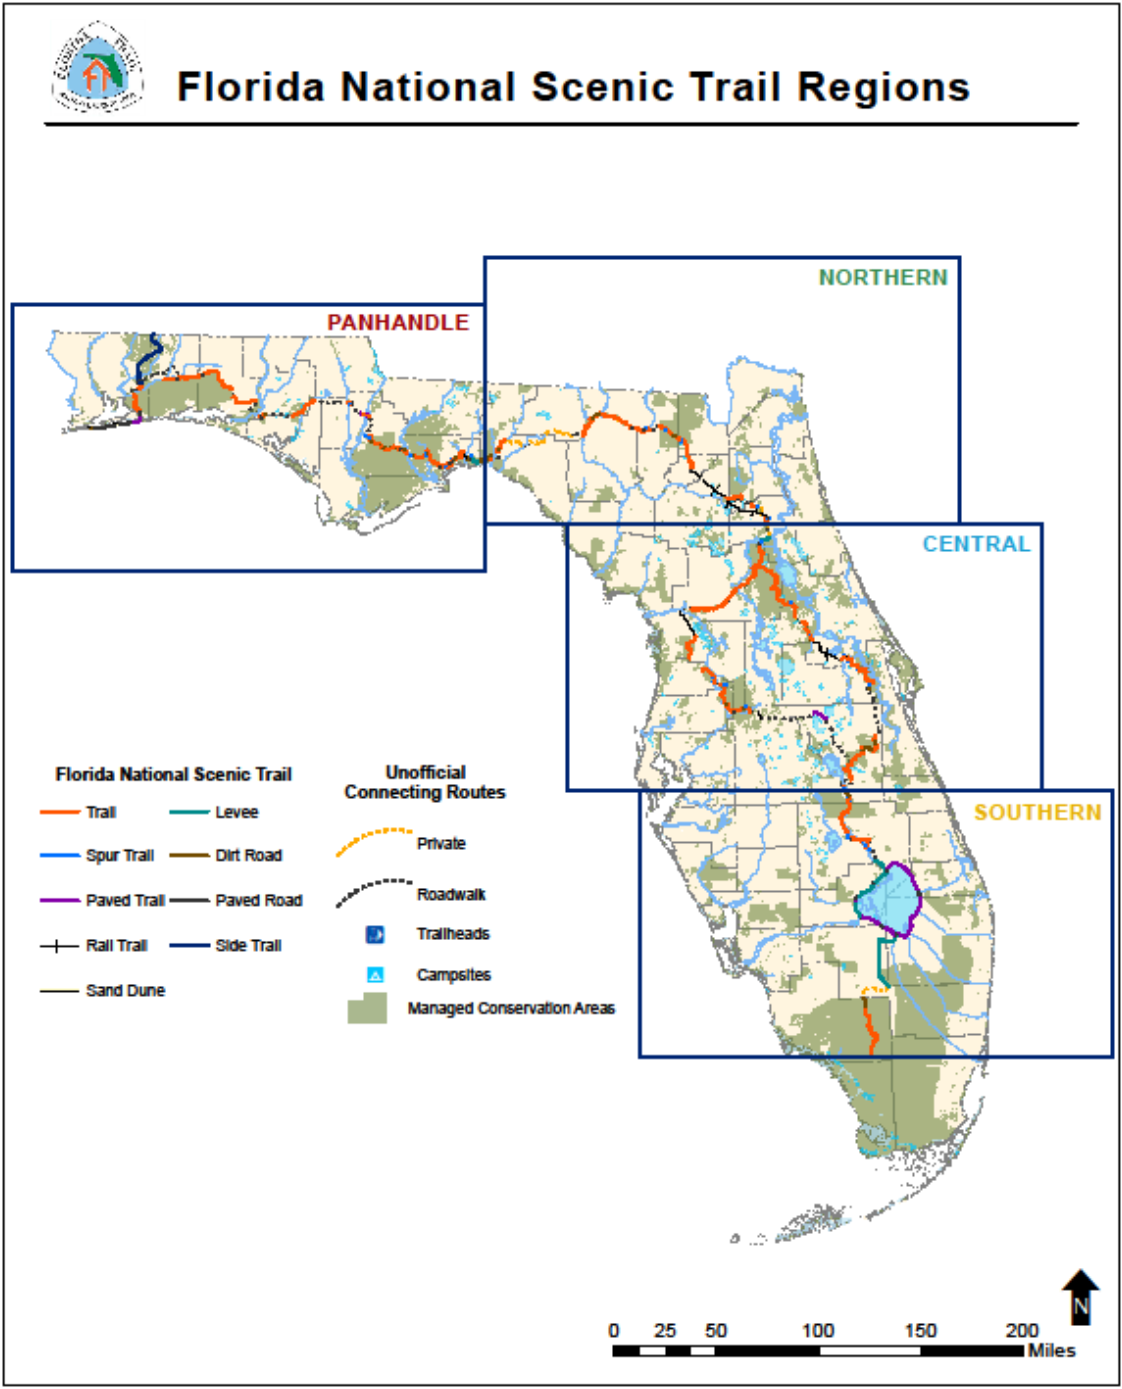 Florida Central Map.Florida National Scenic Trail About The Trail